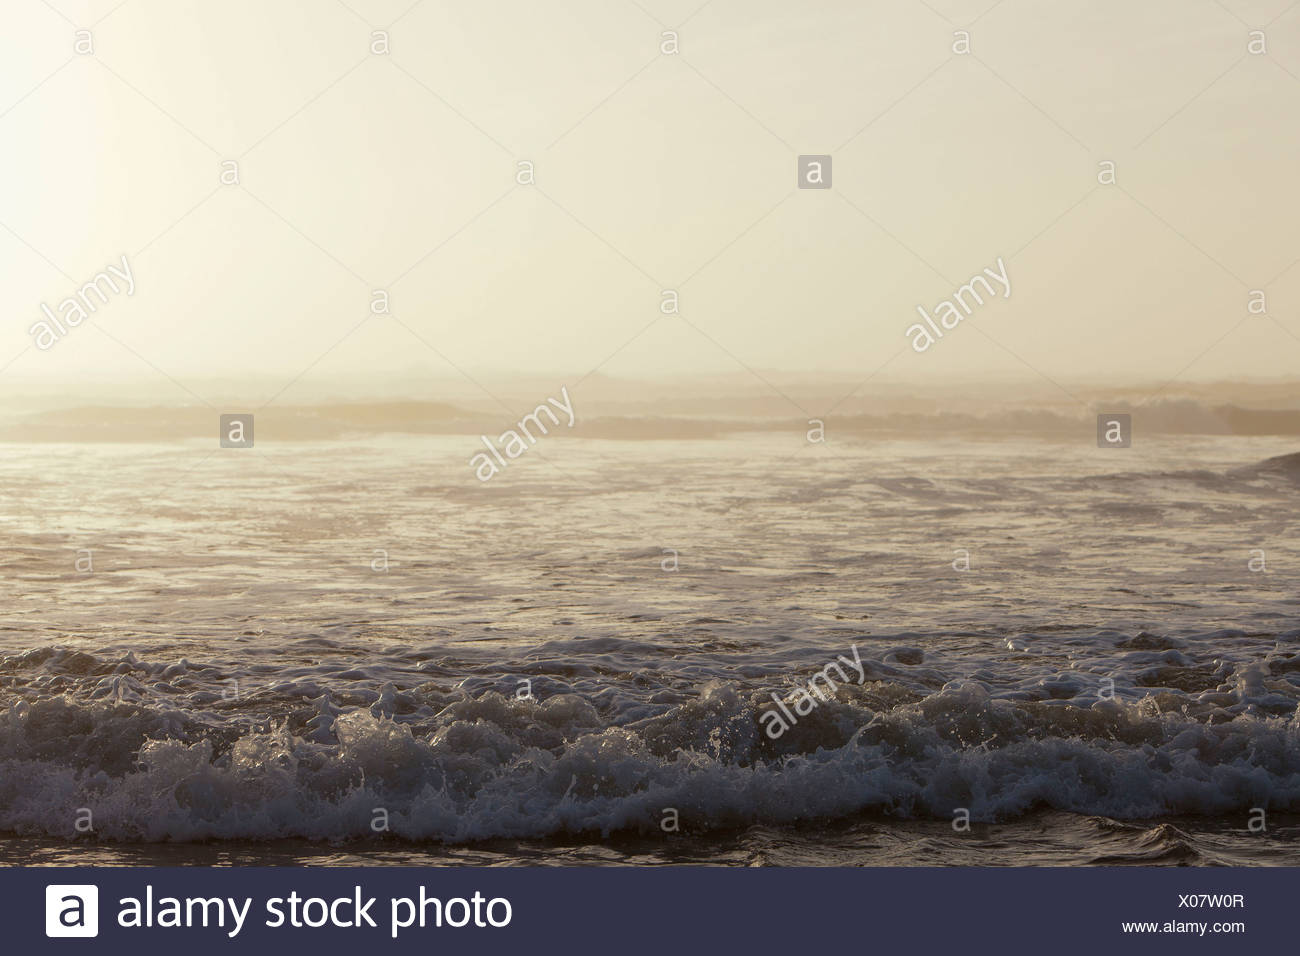 View from the coast over the ocean at Olympic national park. - Stock Image